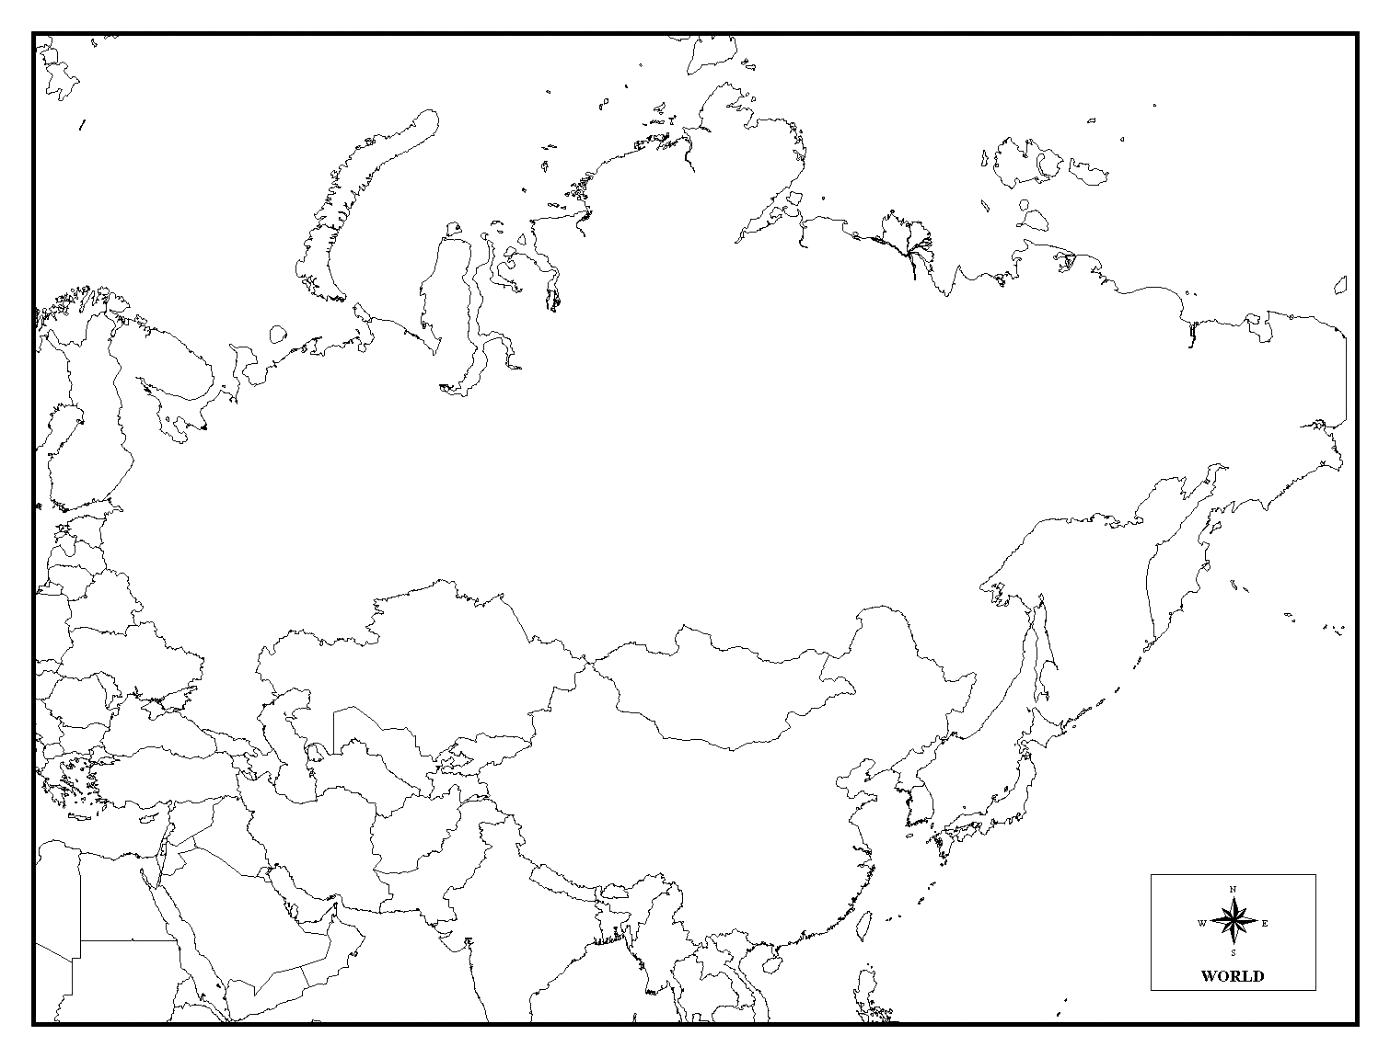 Projection Map Blank Printable World Outline Maps Royalty.